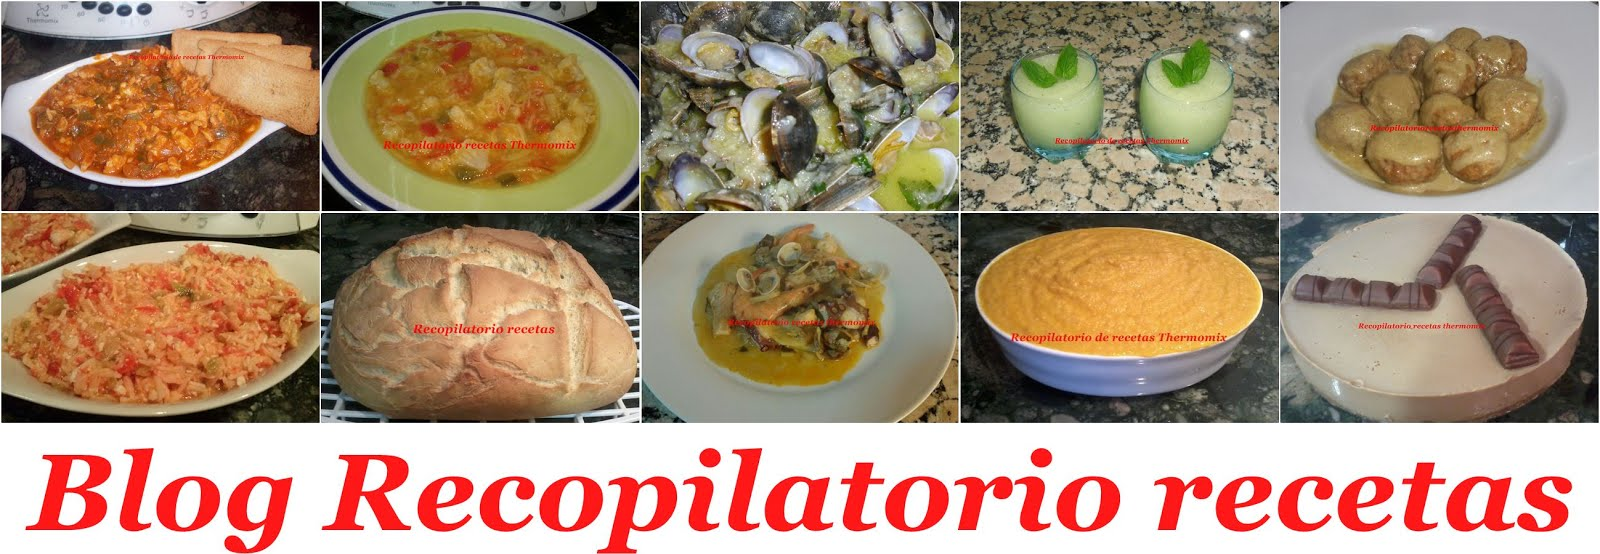 Blog Recopilatorio recetas Thermomix